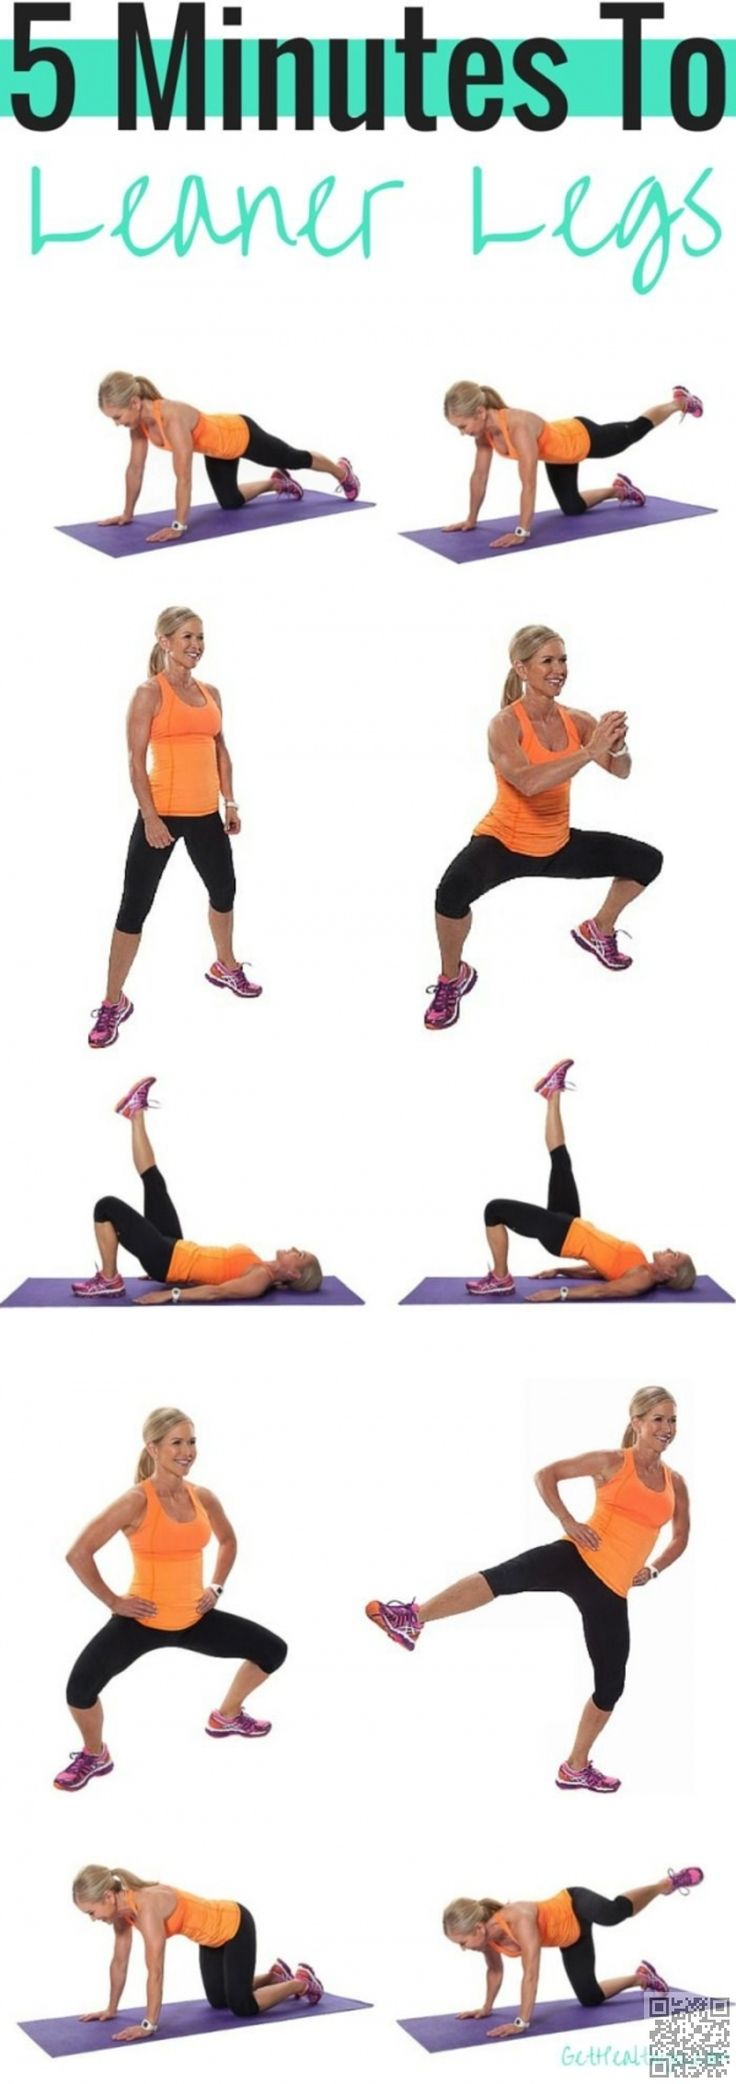 5 #Minutes to Leaner Legs - 22 Leg #Workouts